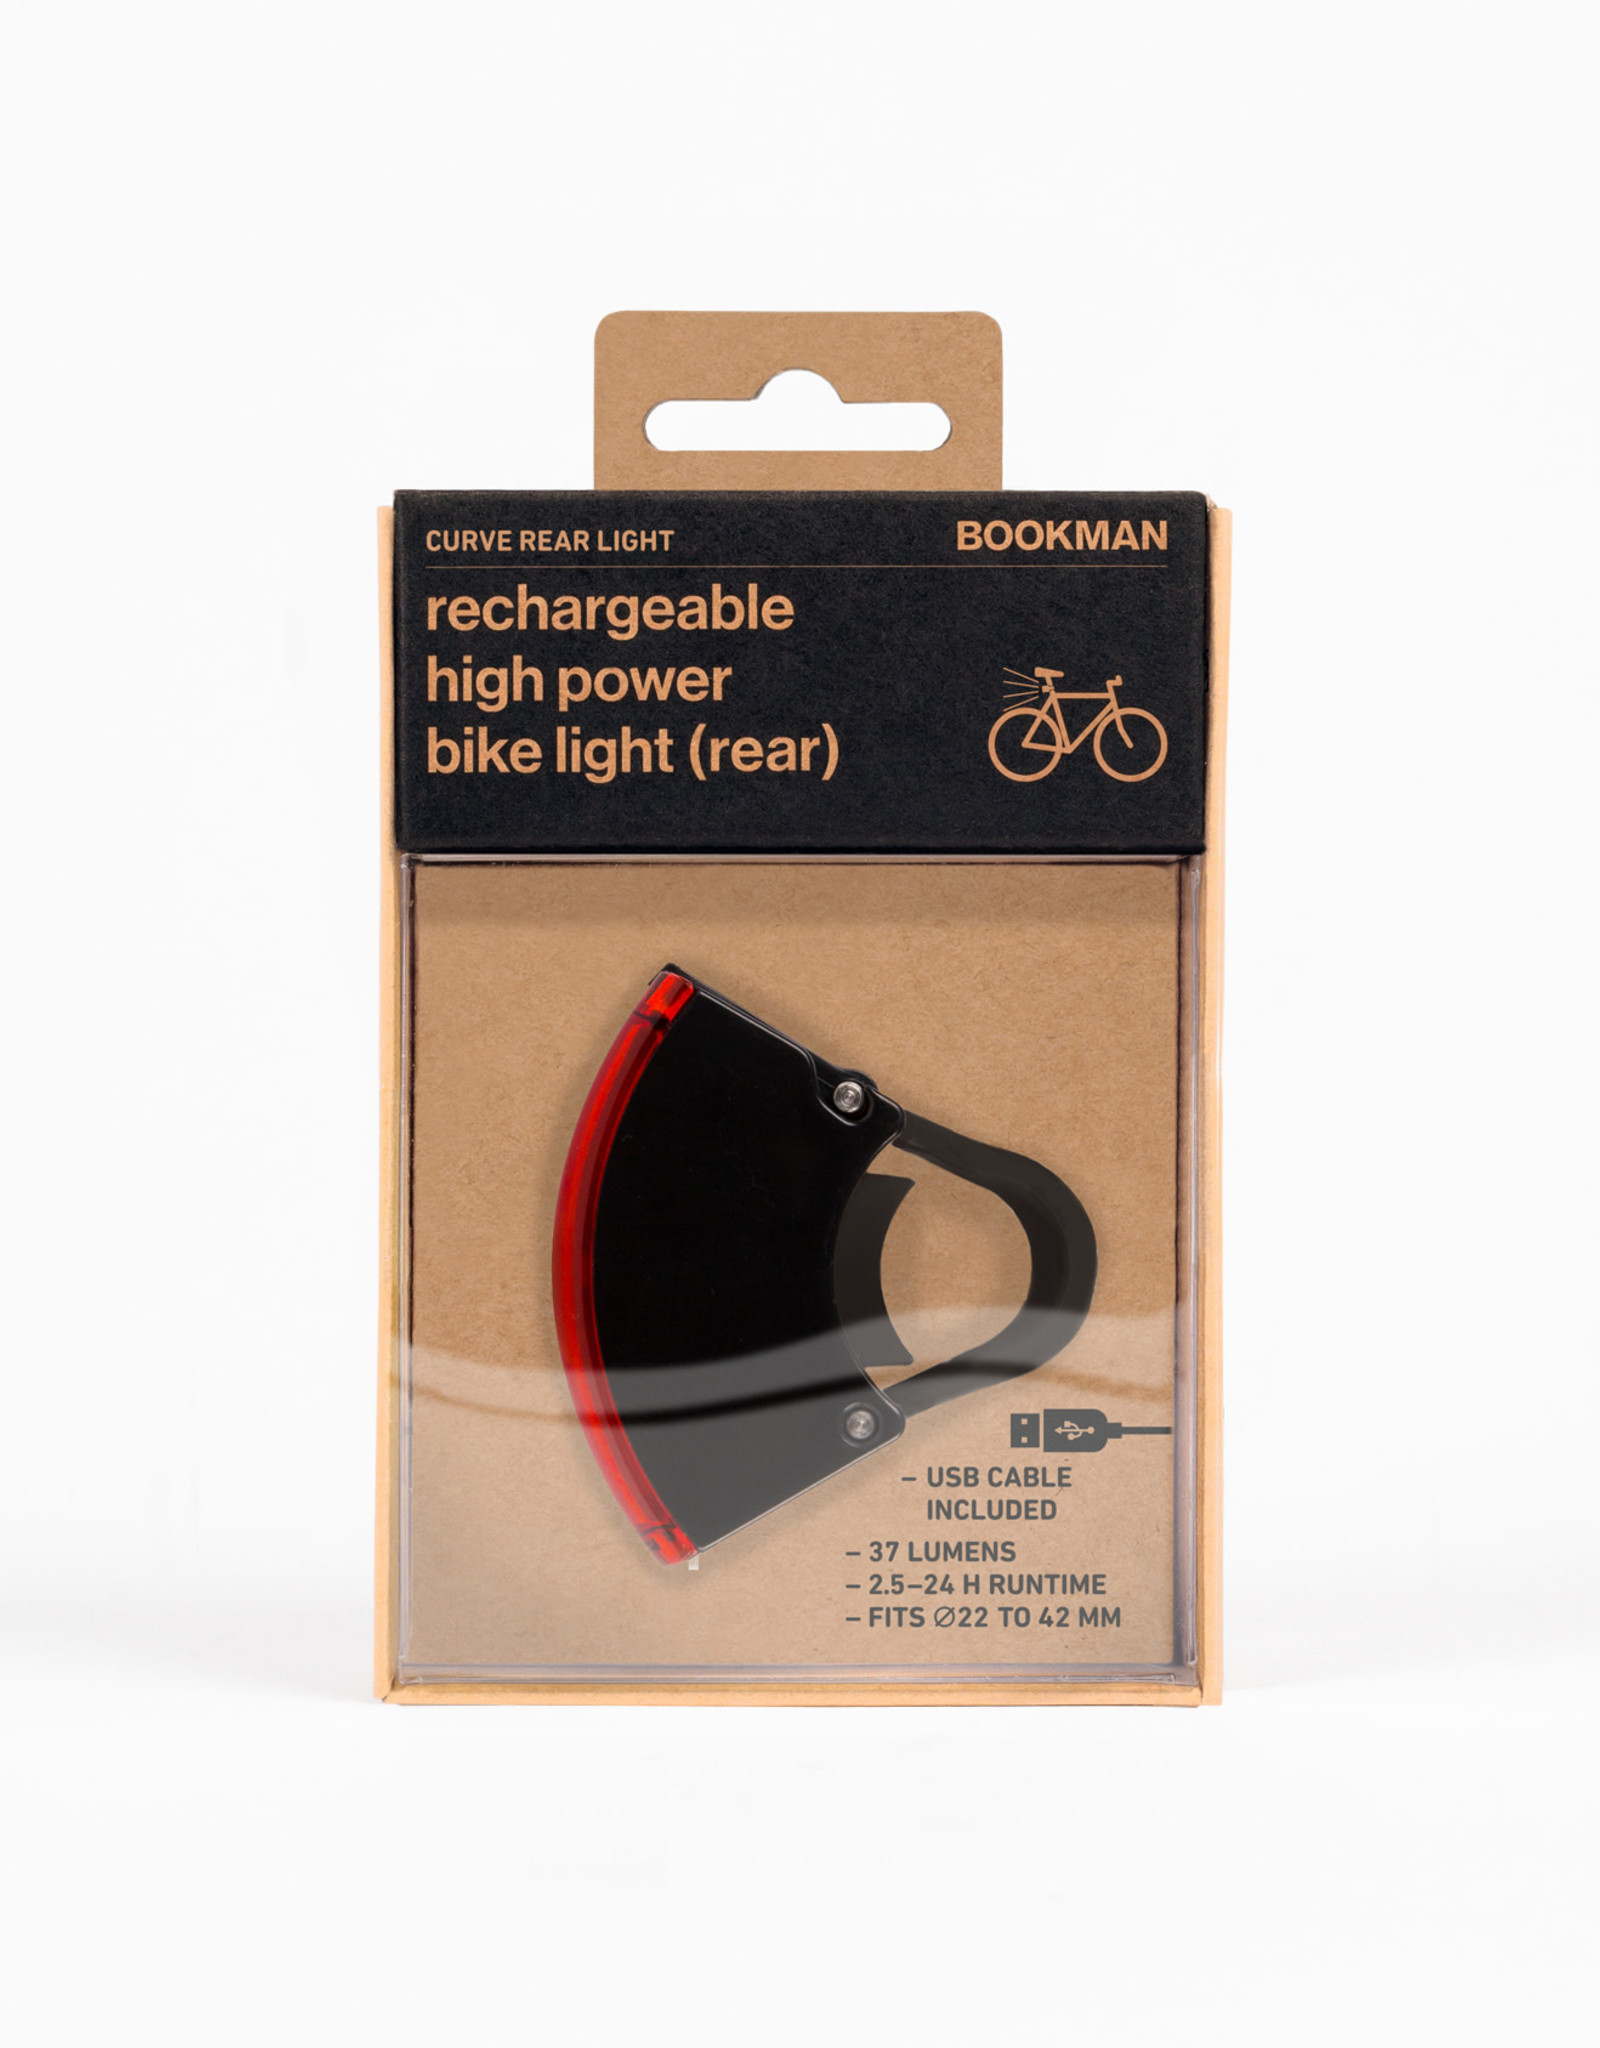 Bookman Curve rear light